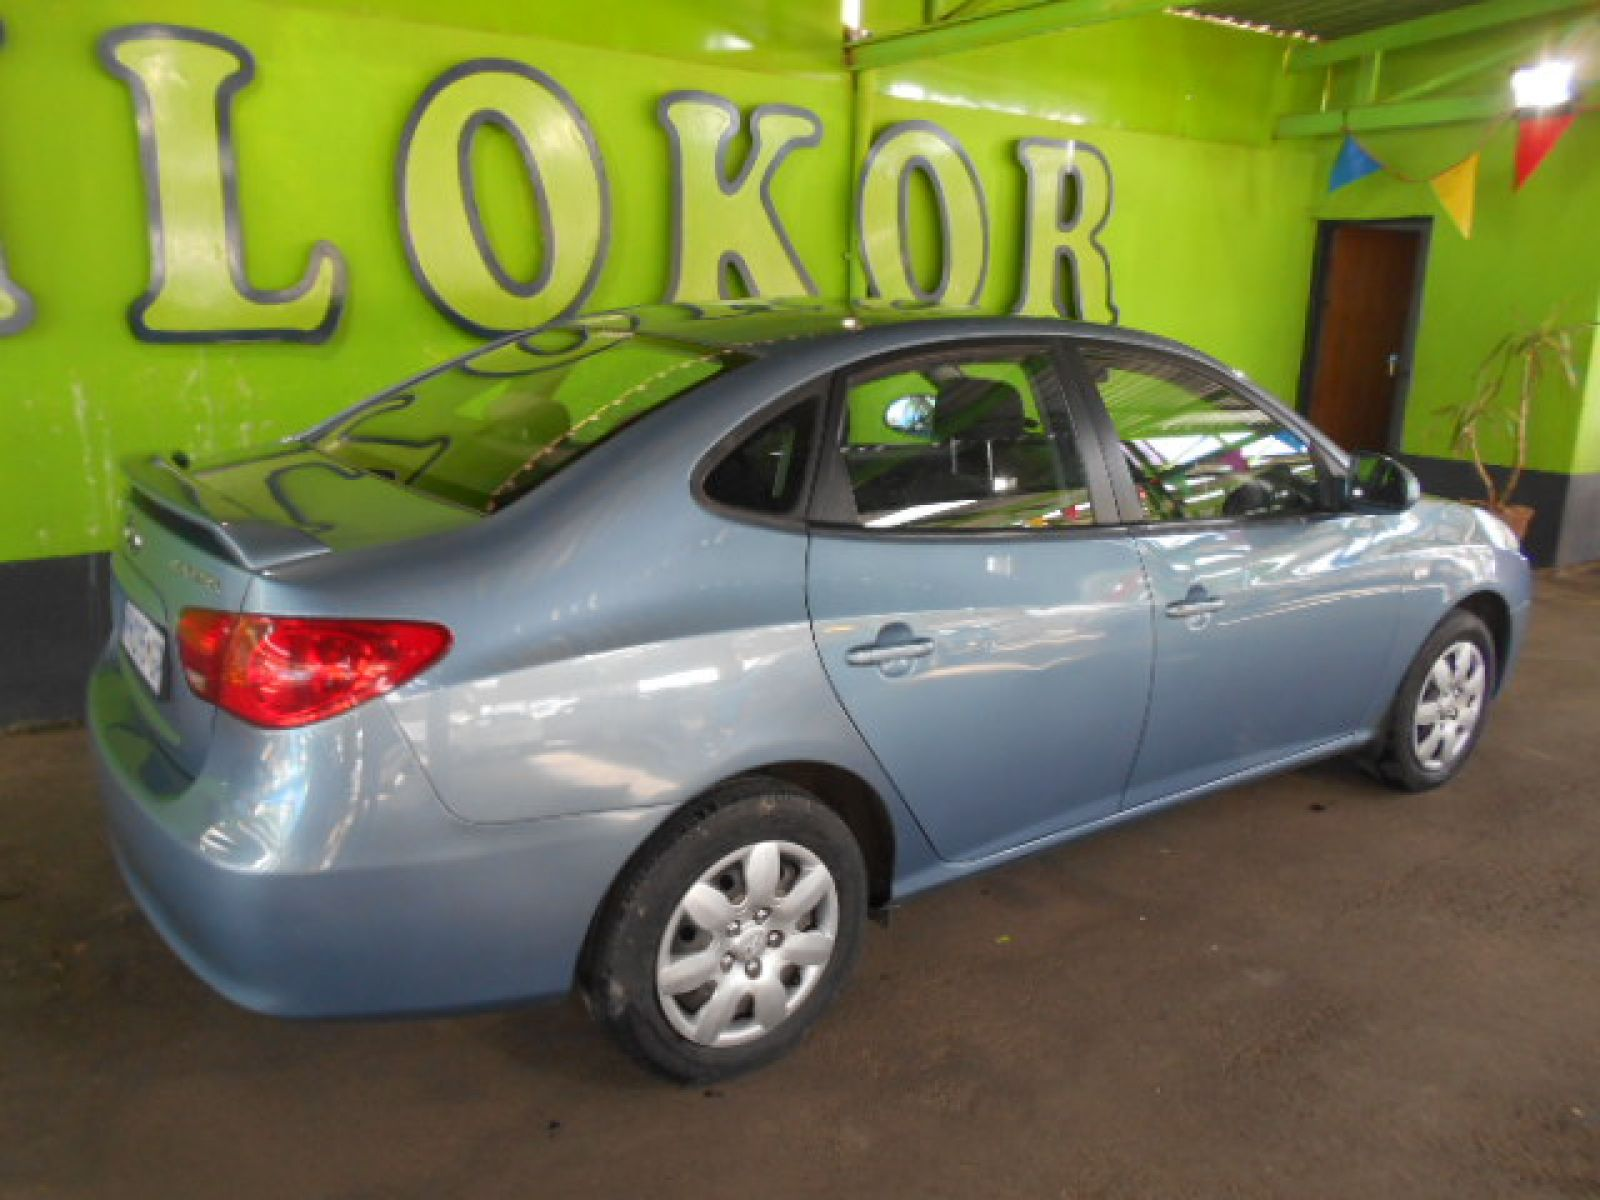 2008 hyundai elantra r 79 990 for sale kilokor motors. Black Bedroom Furniture Sets. Home Design Ideas